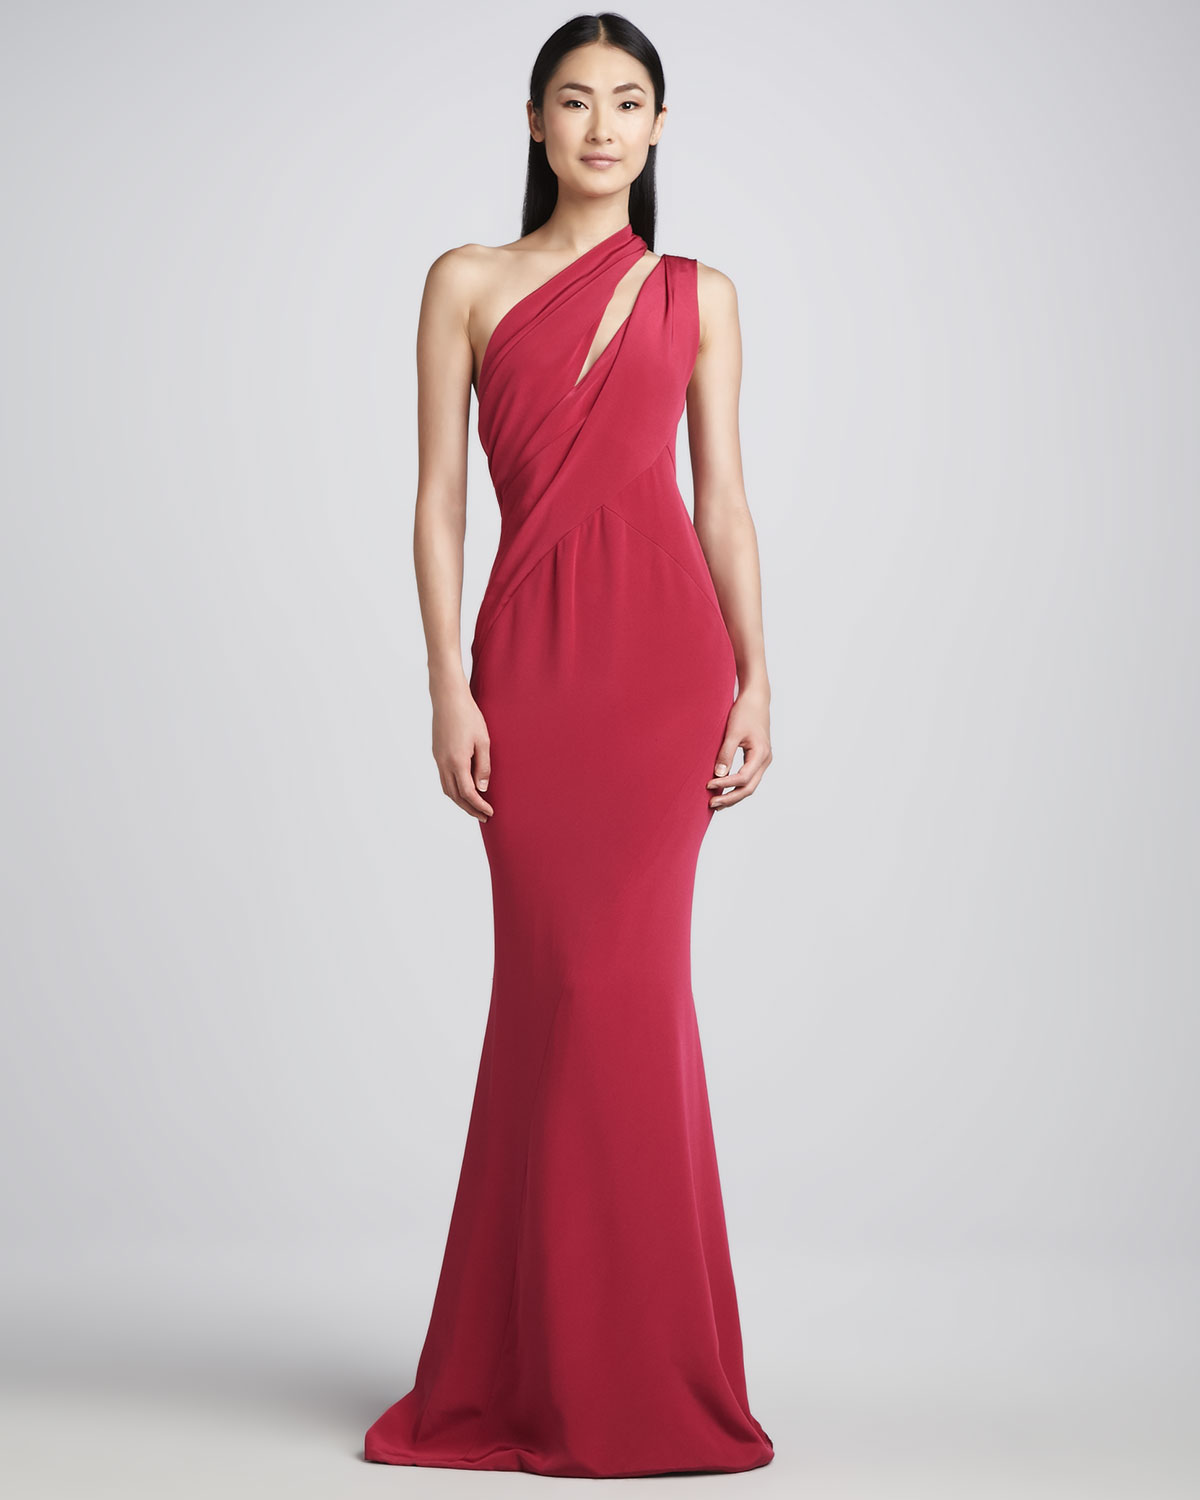 Lyst - J. Mendel Asymmetricdraped Silk Gown Fuchsia in Red